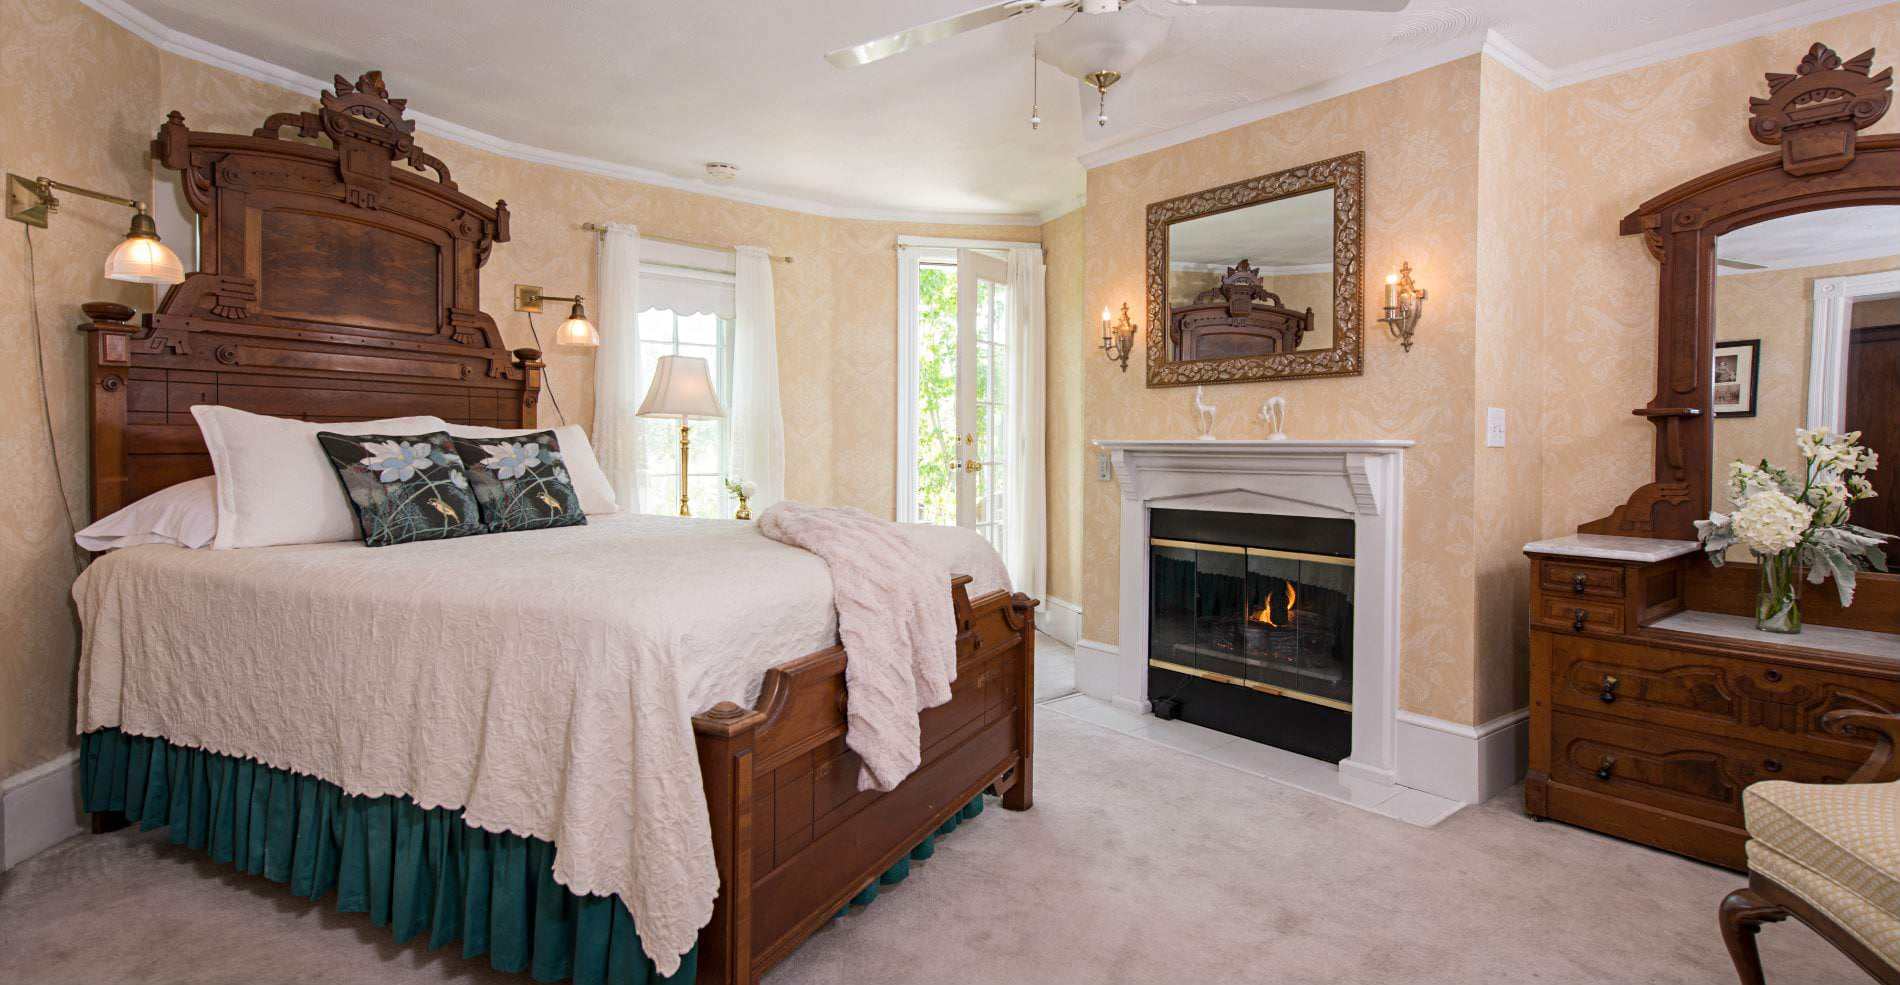 In a warm cozy room a Large white bed with green accents sits across from a beautiful wardrobe and fireplace